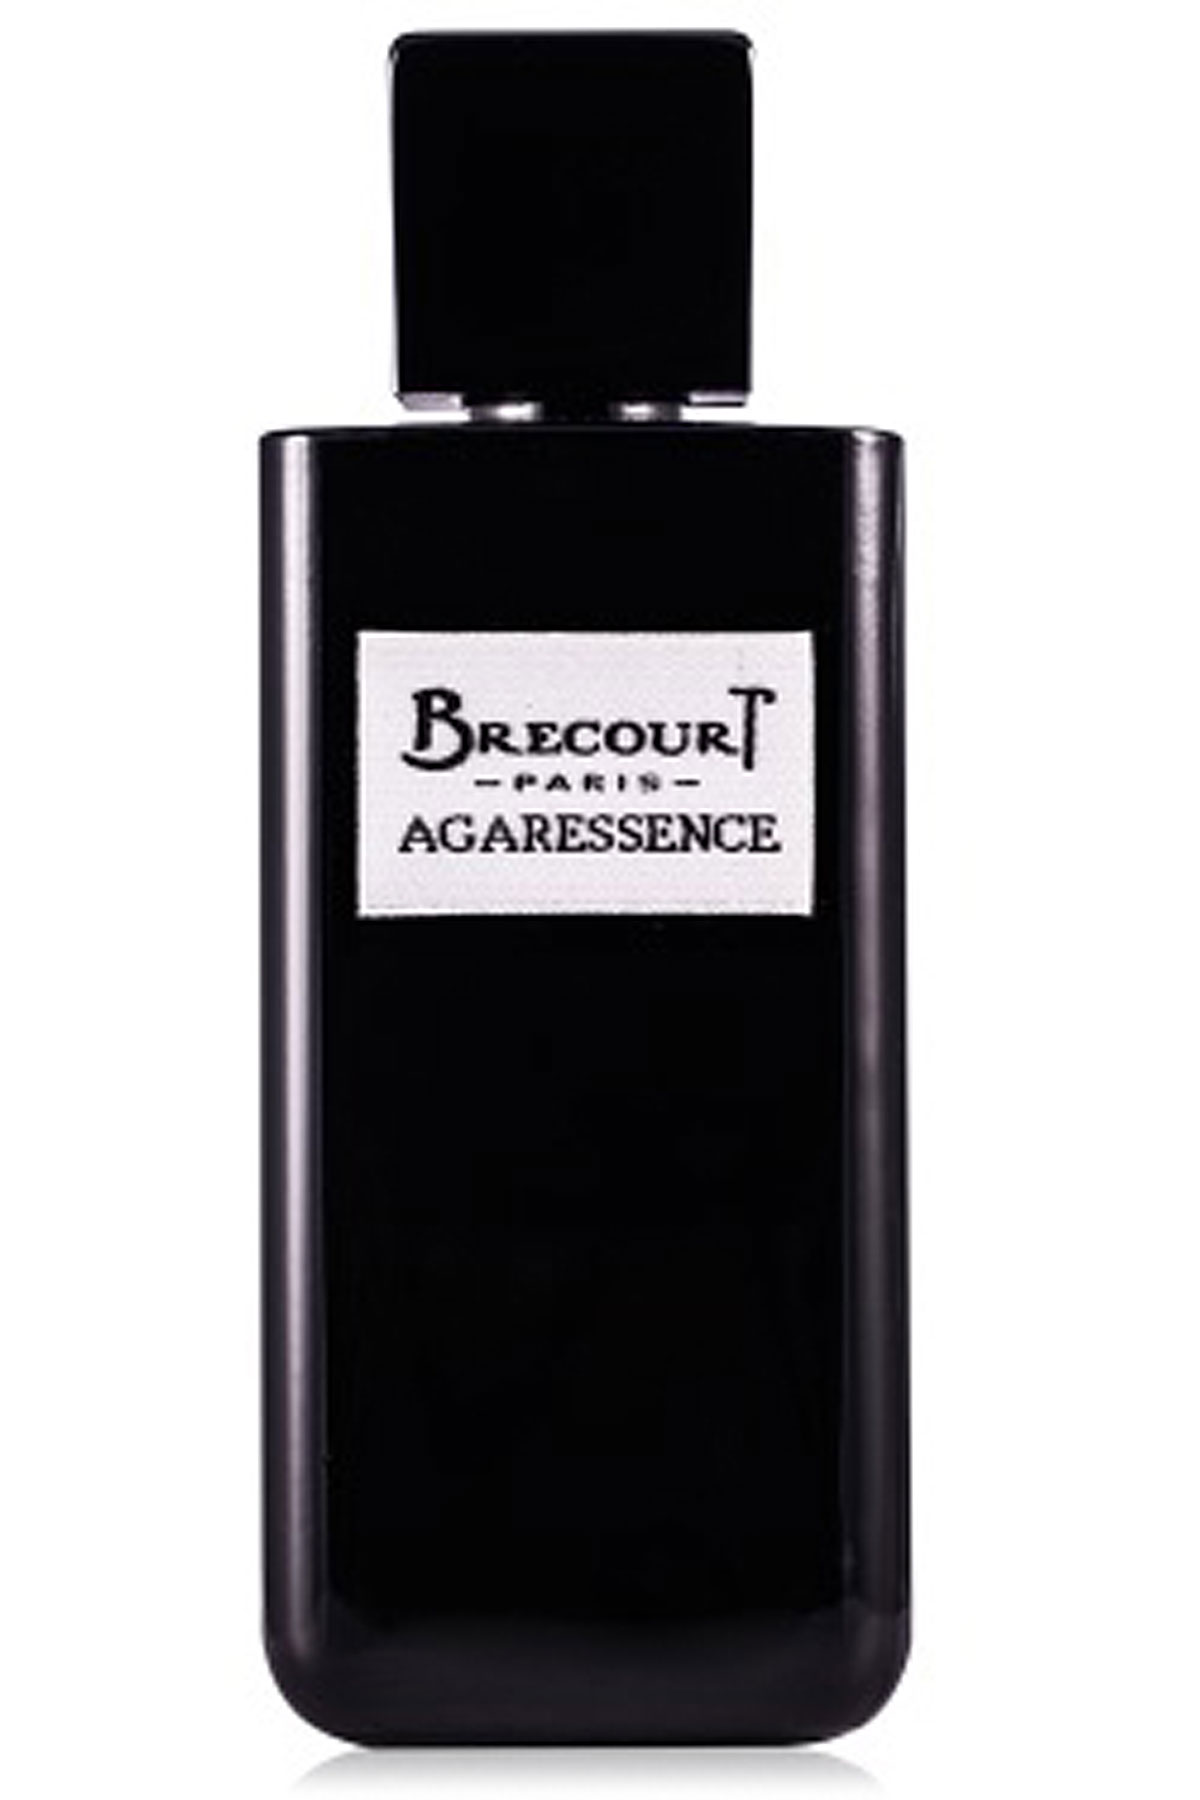 Brecourt Fragrances for Women, Agaressence - Eau De Parfum - 100 Ml, 2019, 100 ml